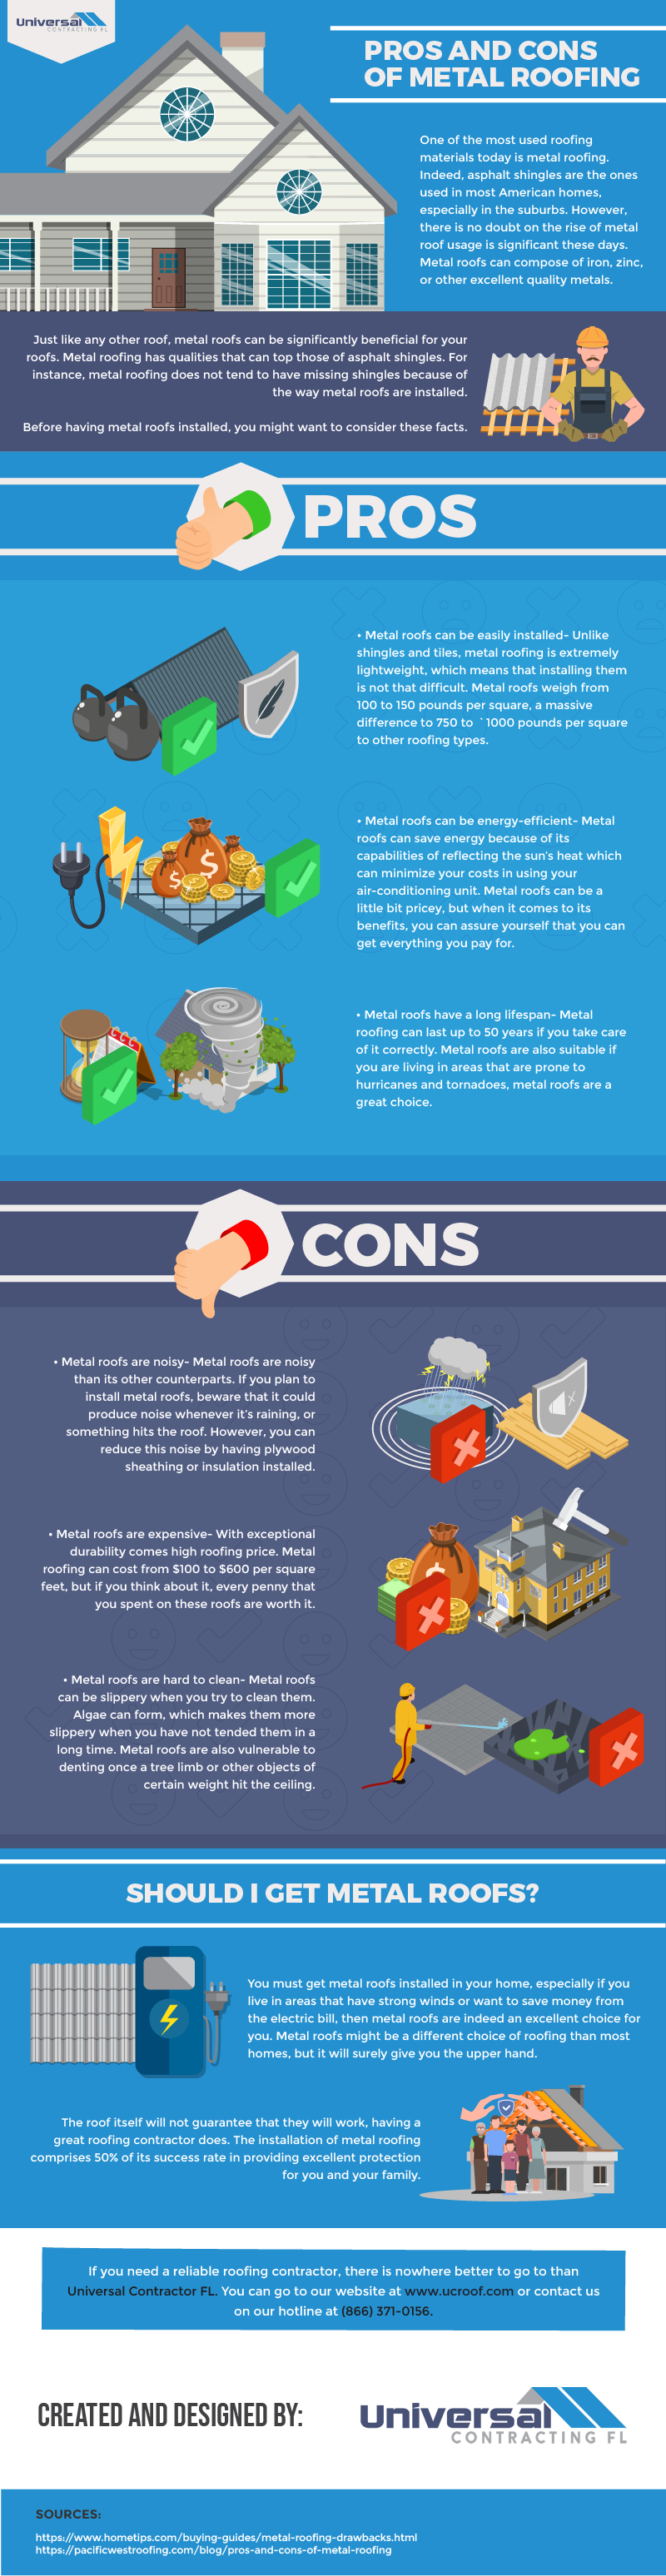 Pros and Cons of Metal Roofing Revised - Infographic